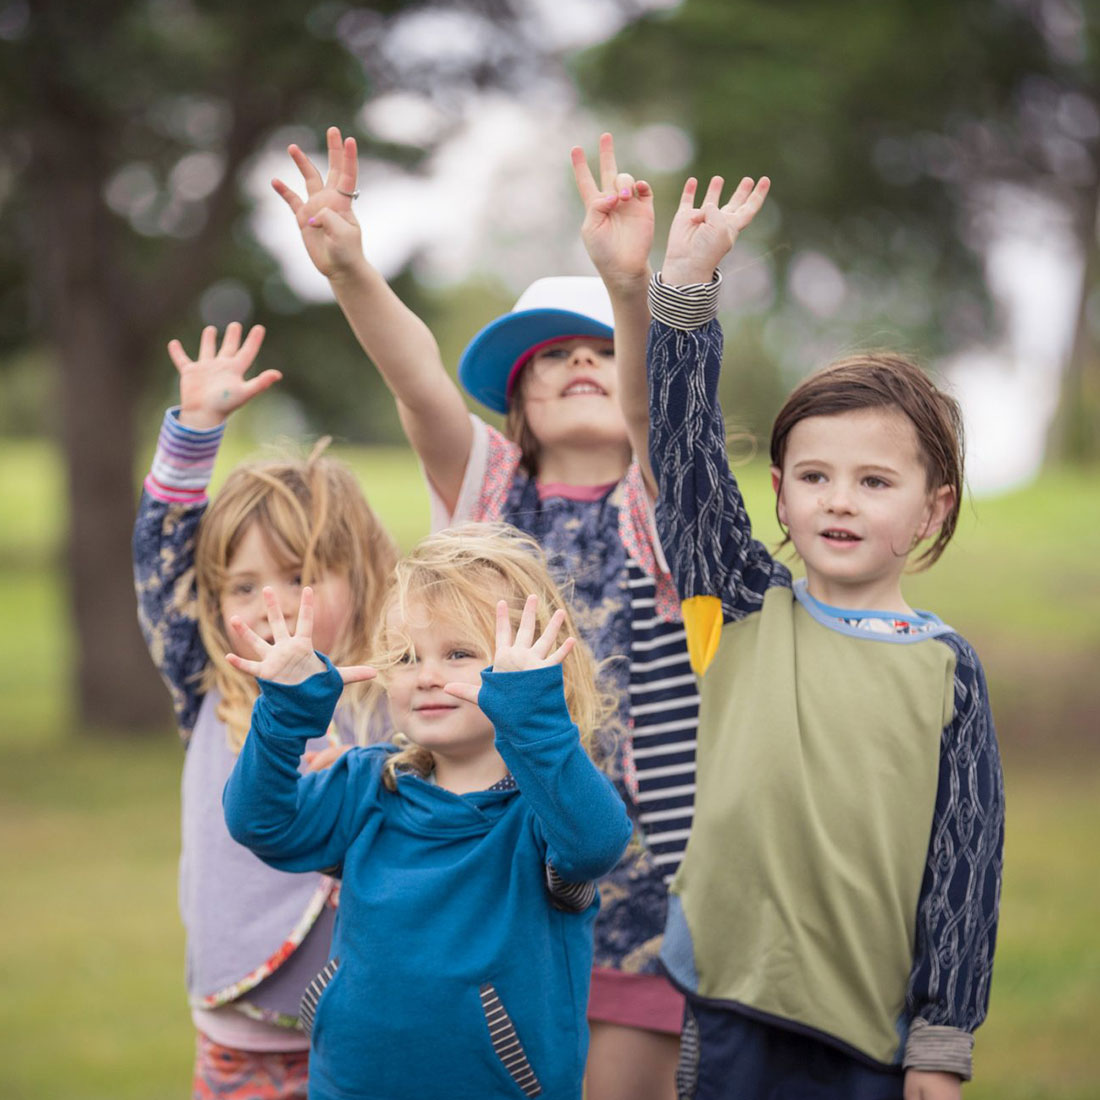 Four young children, under the age of five, raise their hands in the air while modelling a selection of Oishi-m clothing outdoors.